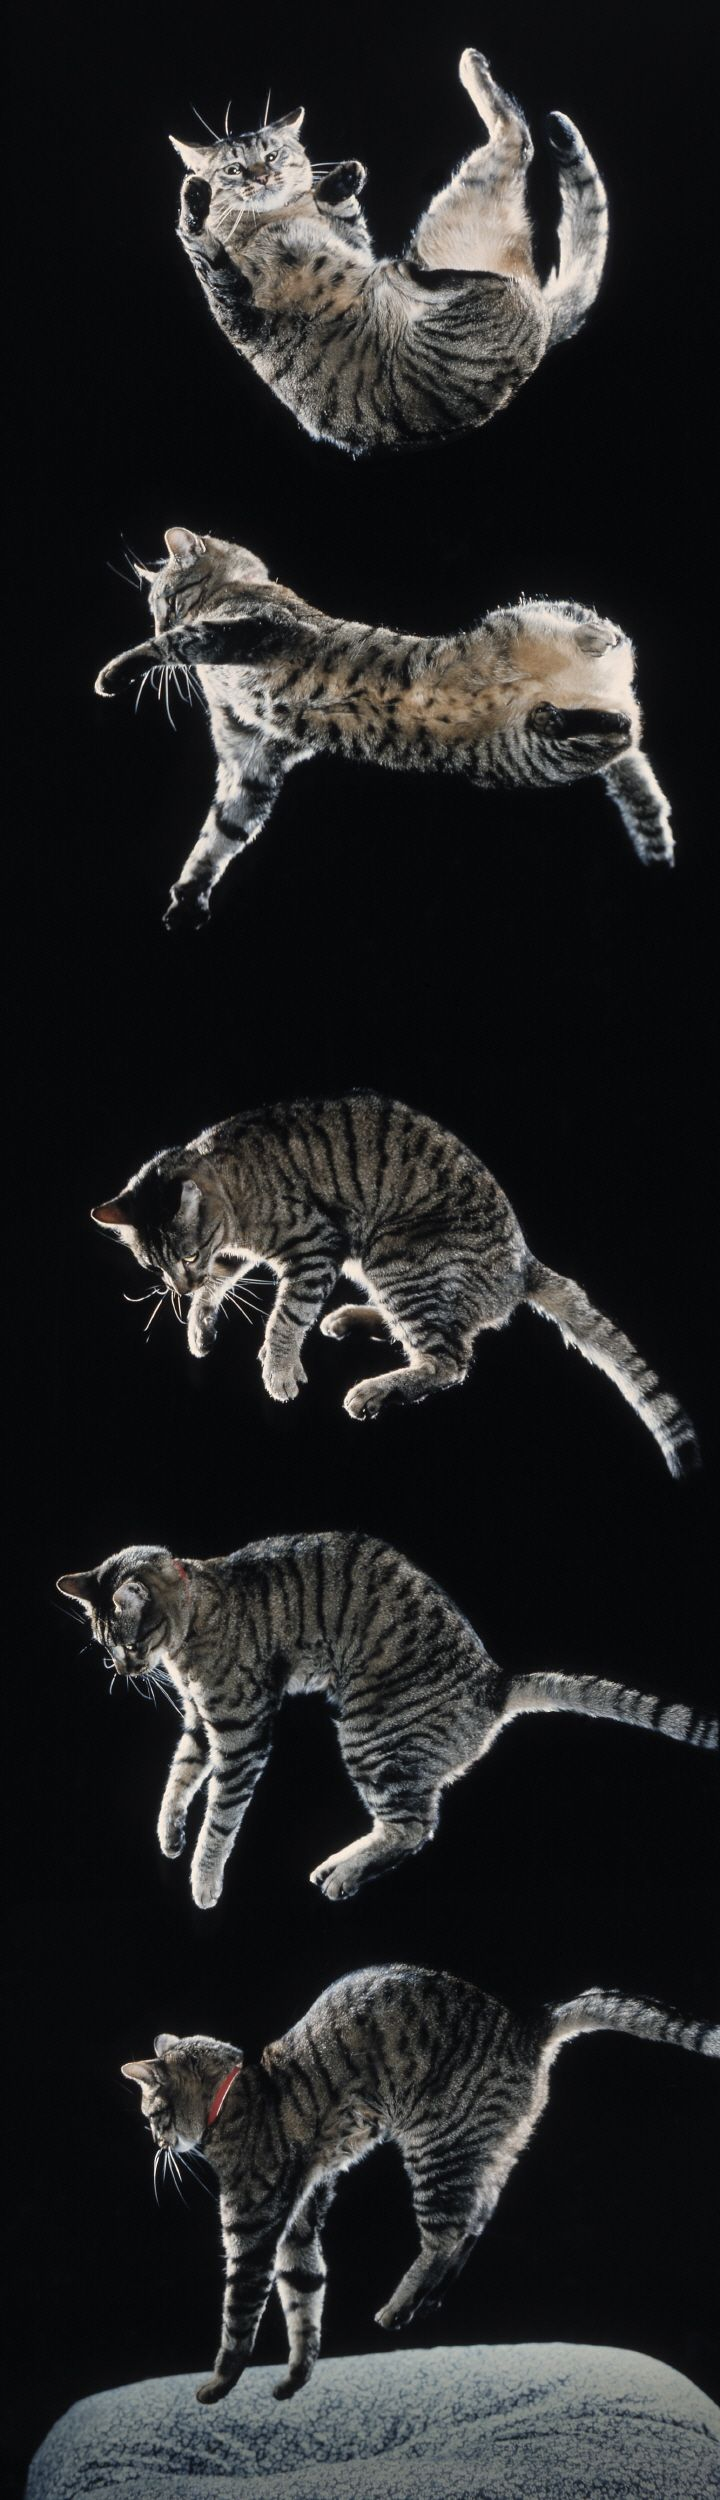 How cats land on their feet. #cats #cat #animals #maths By Ian Stewart, author of 'Cows in the Maze'